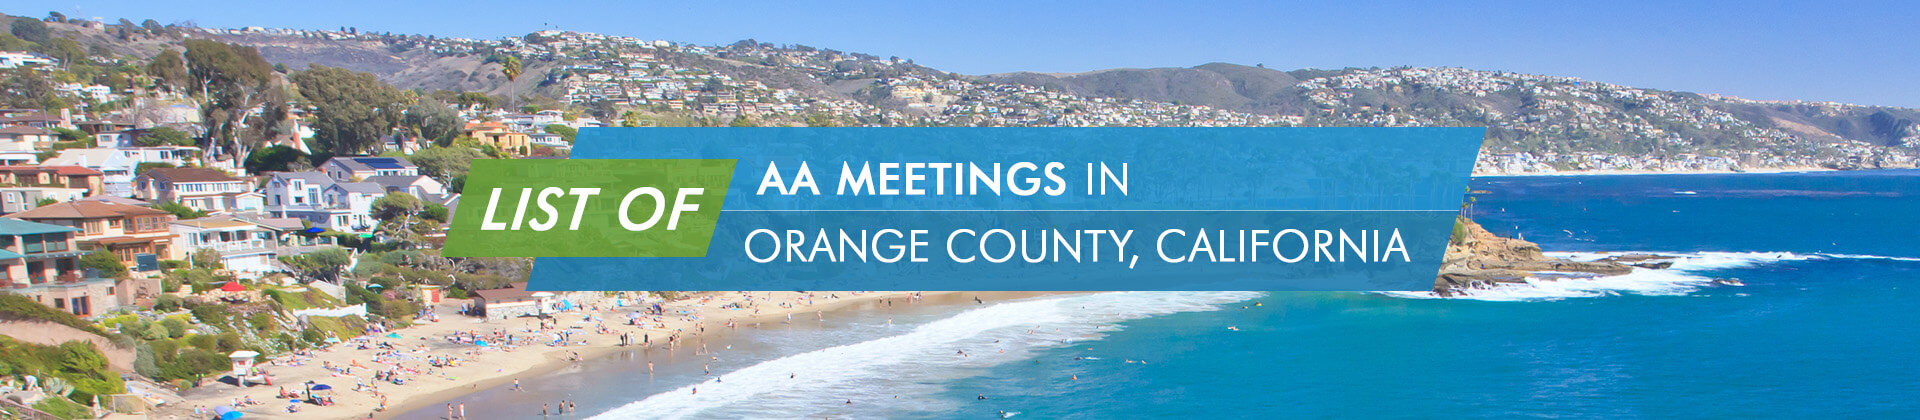 AA Meetings Orange County California